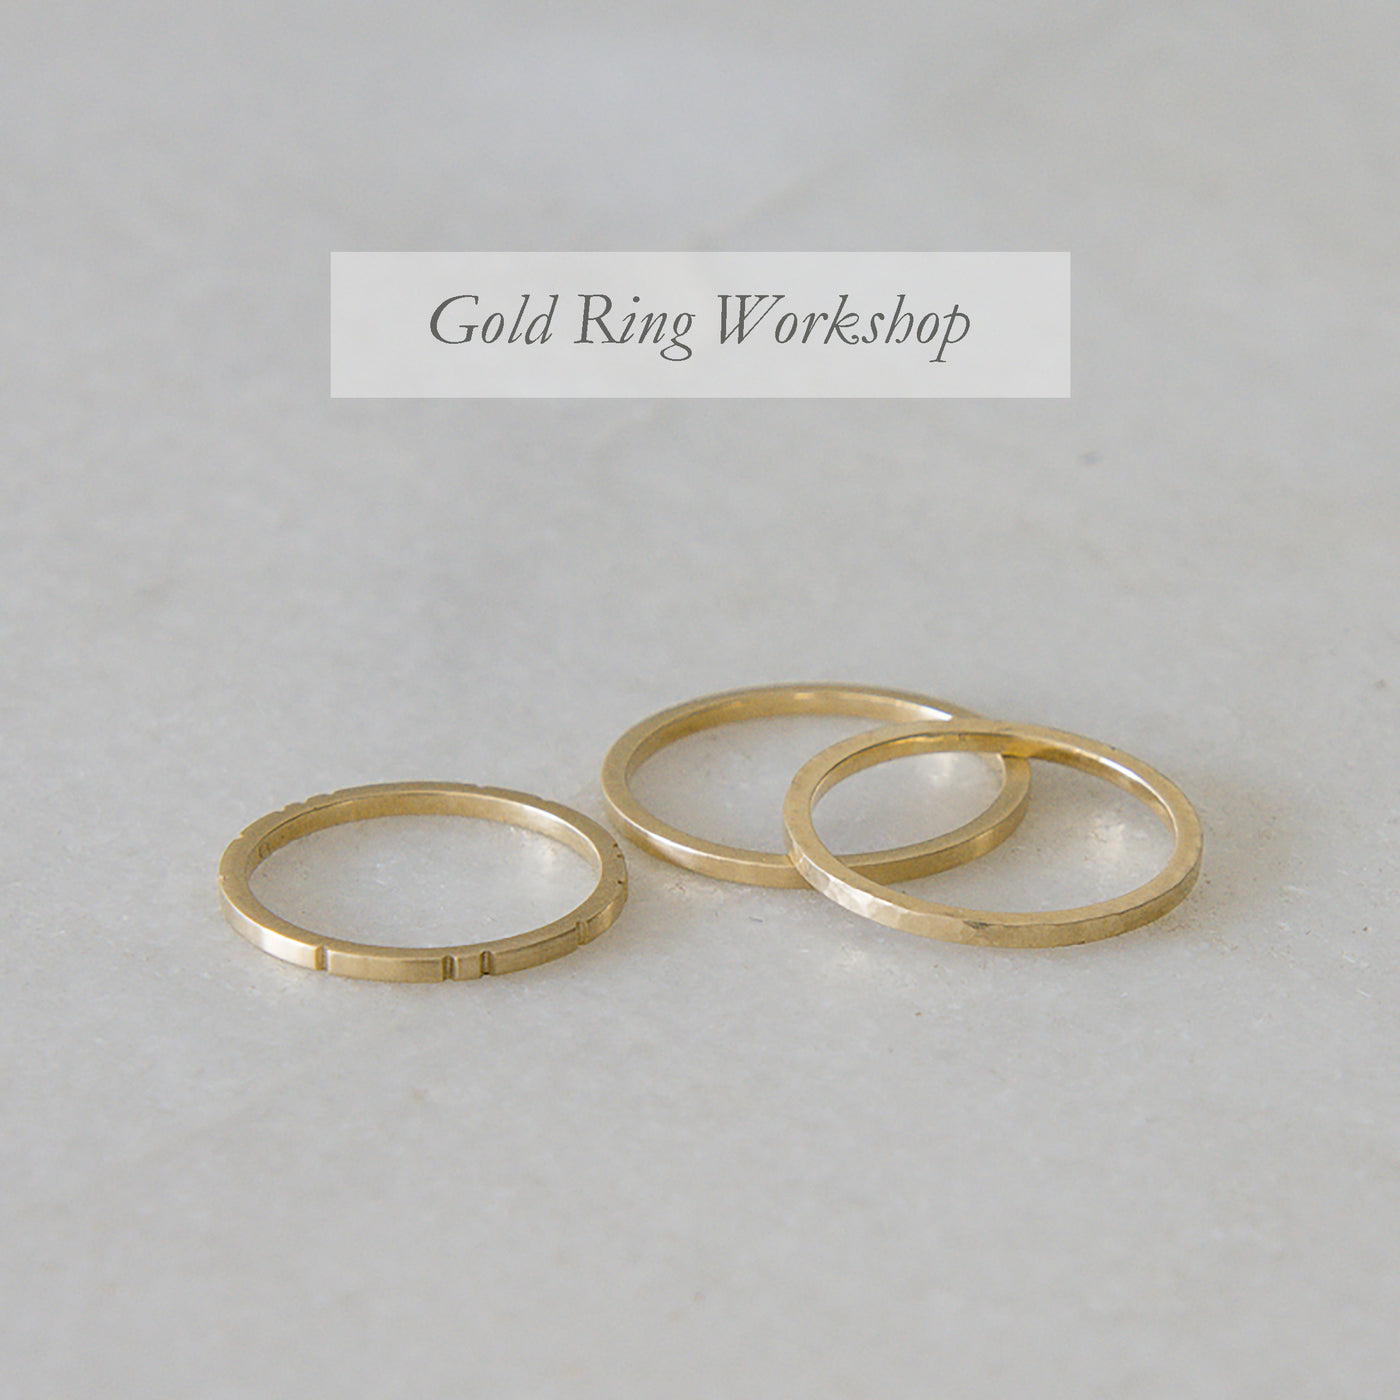 Gold Ring Workshop 19  October 2019